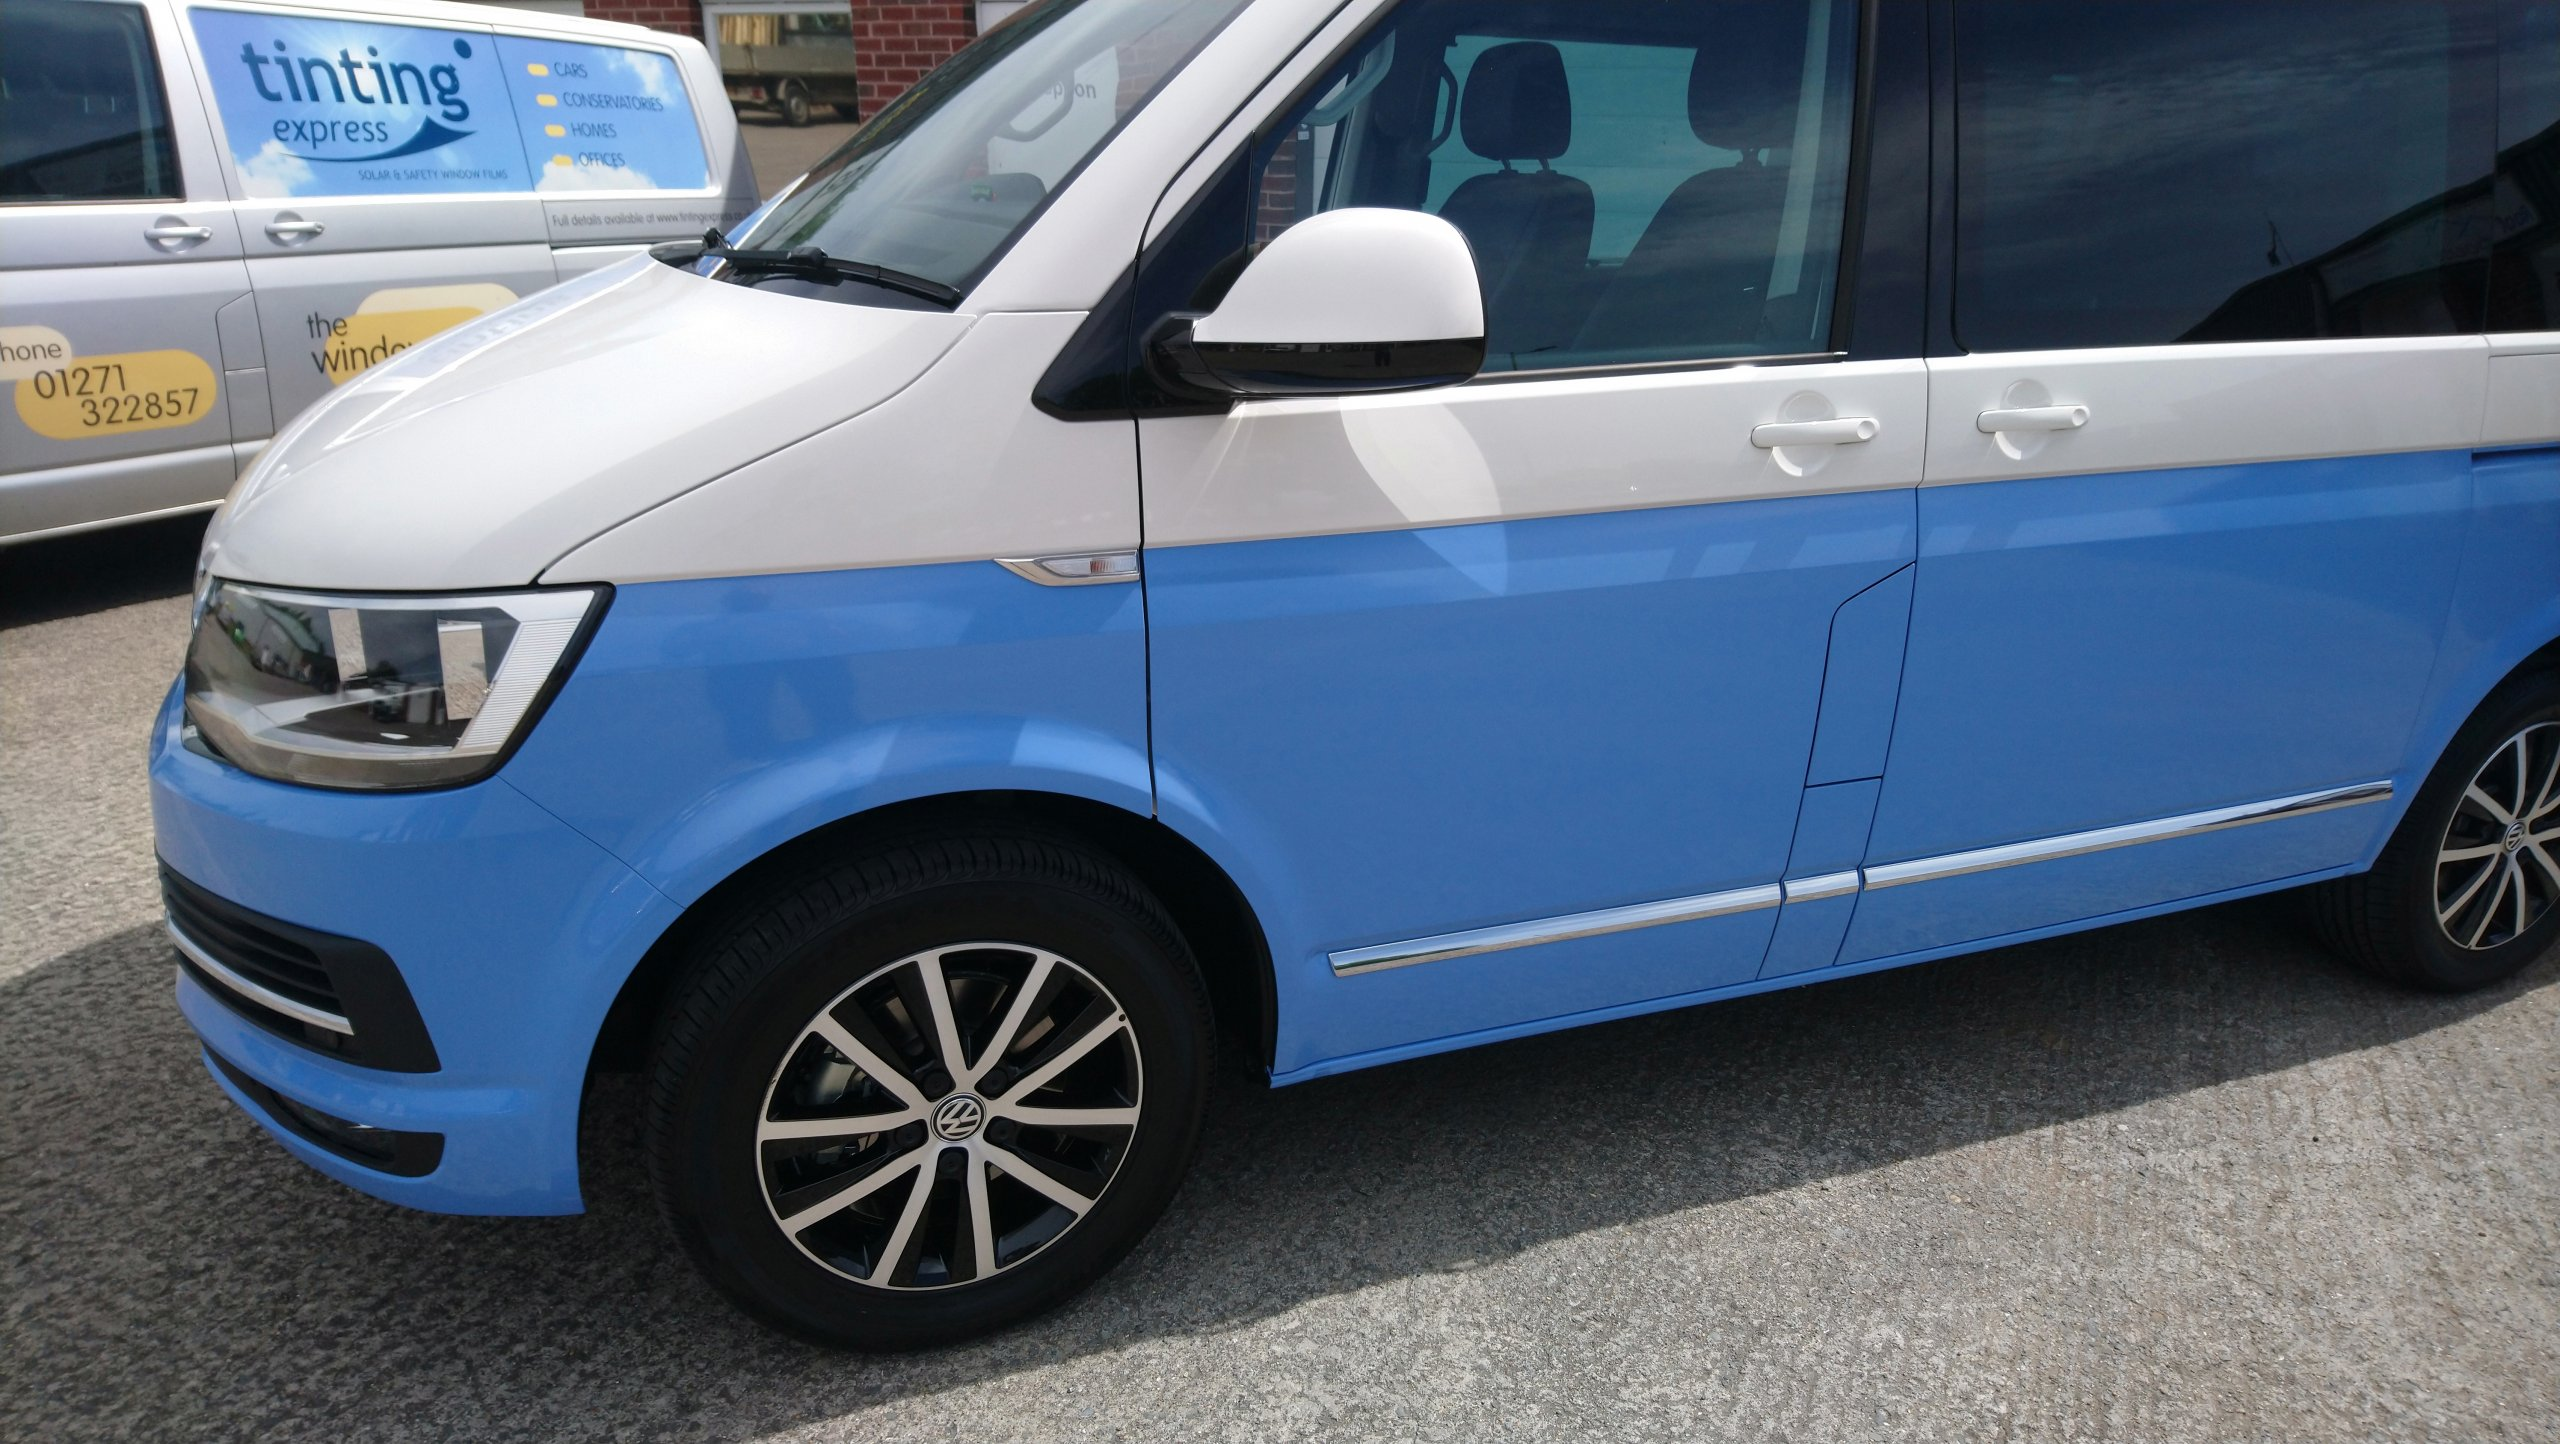 VW T6 Caravelle lower half of van wrapped in a 3M Smokey Blue. Tinting Express Barnstaple